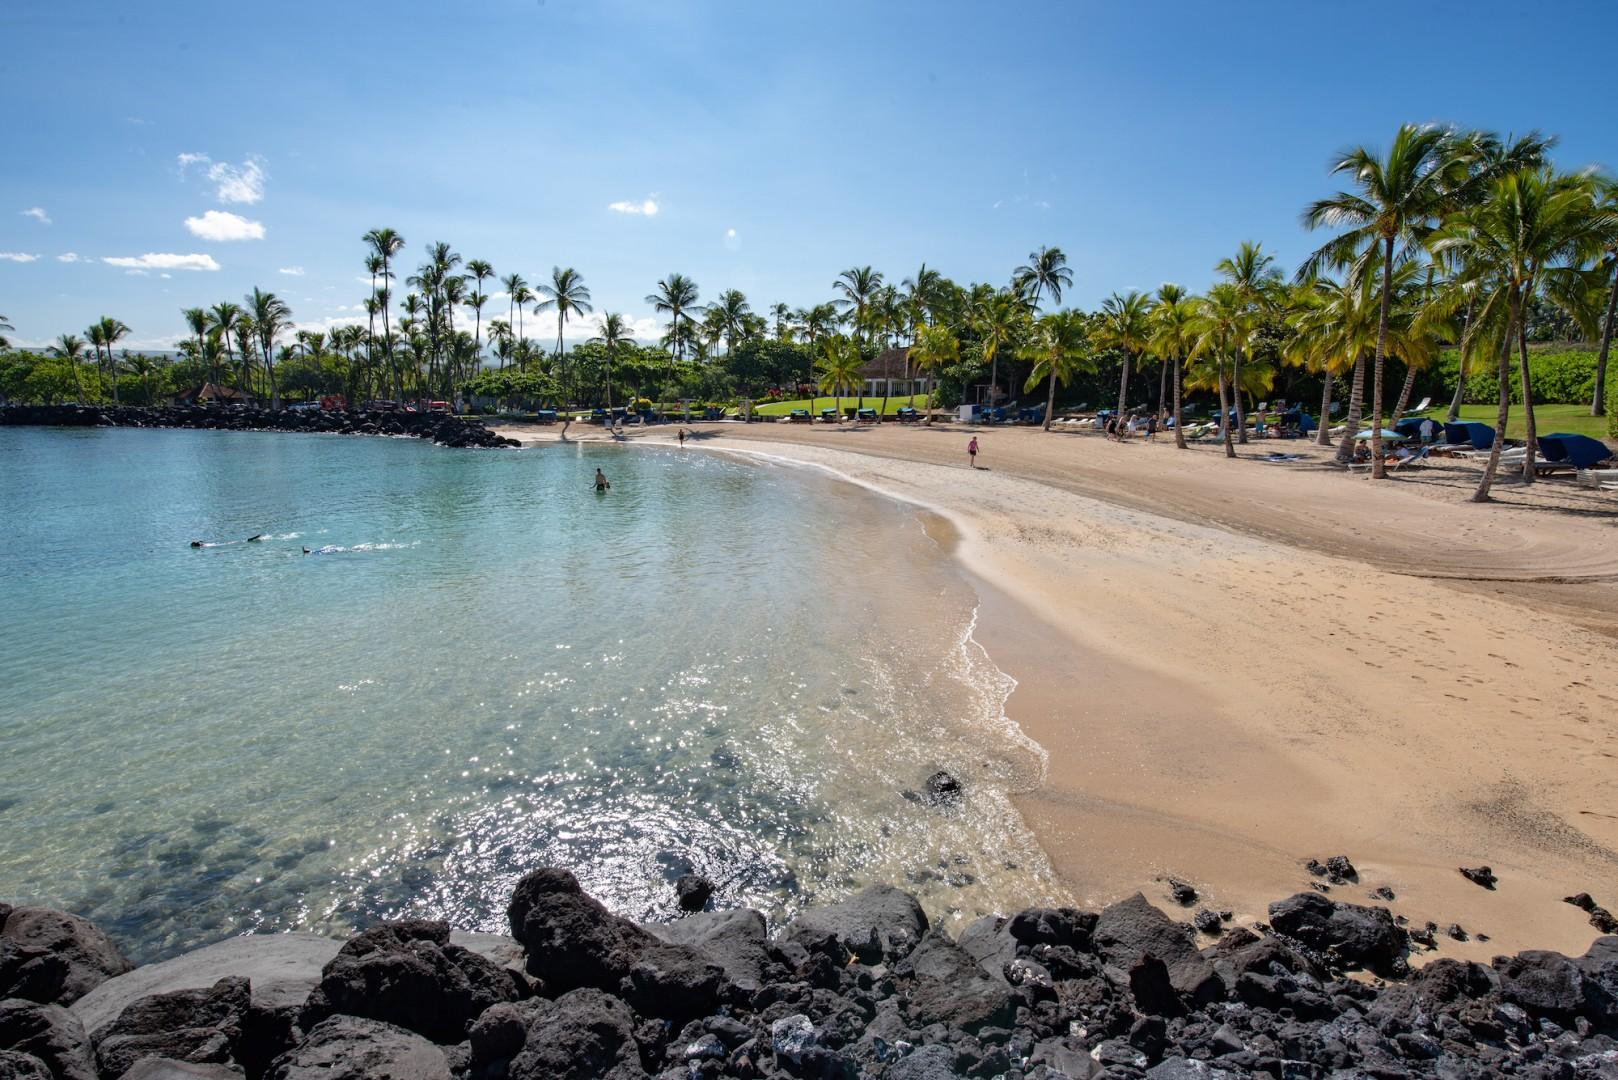 Sparkling Blue Waters Await at the Mauna Lani Beach Club. Guests of a Palm Villas Have Private Access to Beach Club Parking. Napua Open-Air Restaurant Overlooks the Beach.